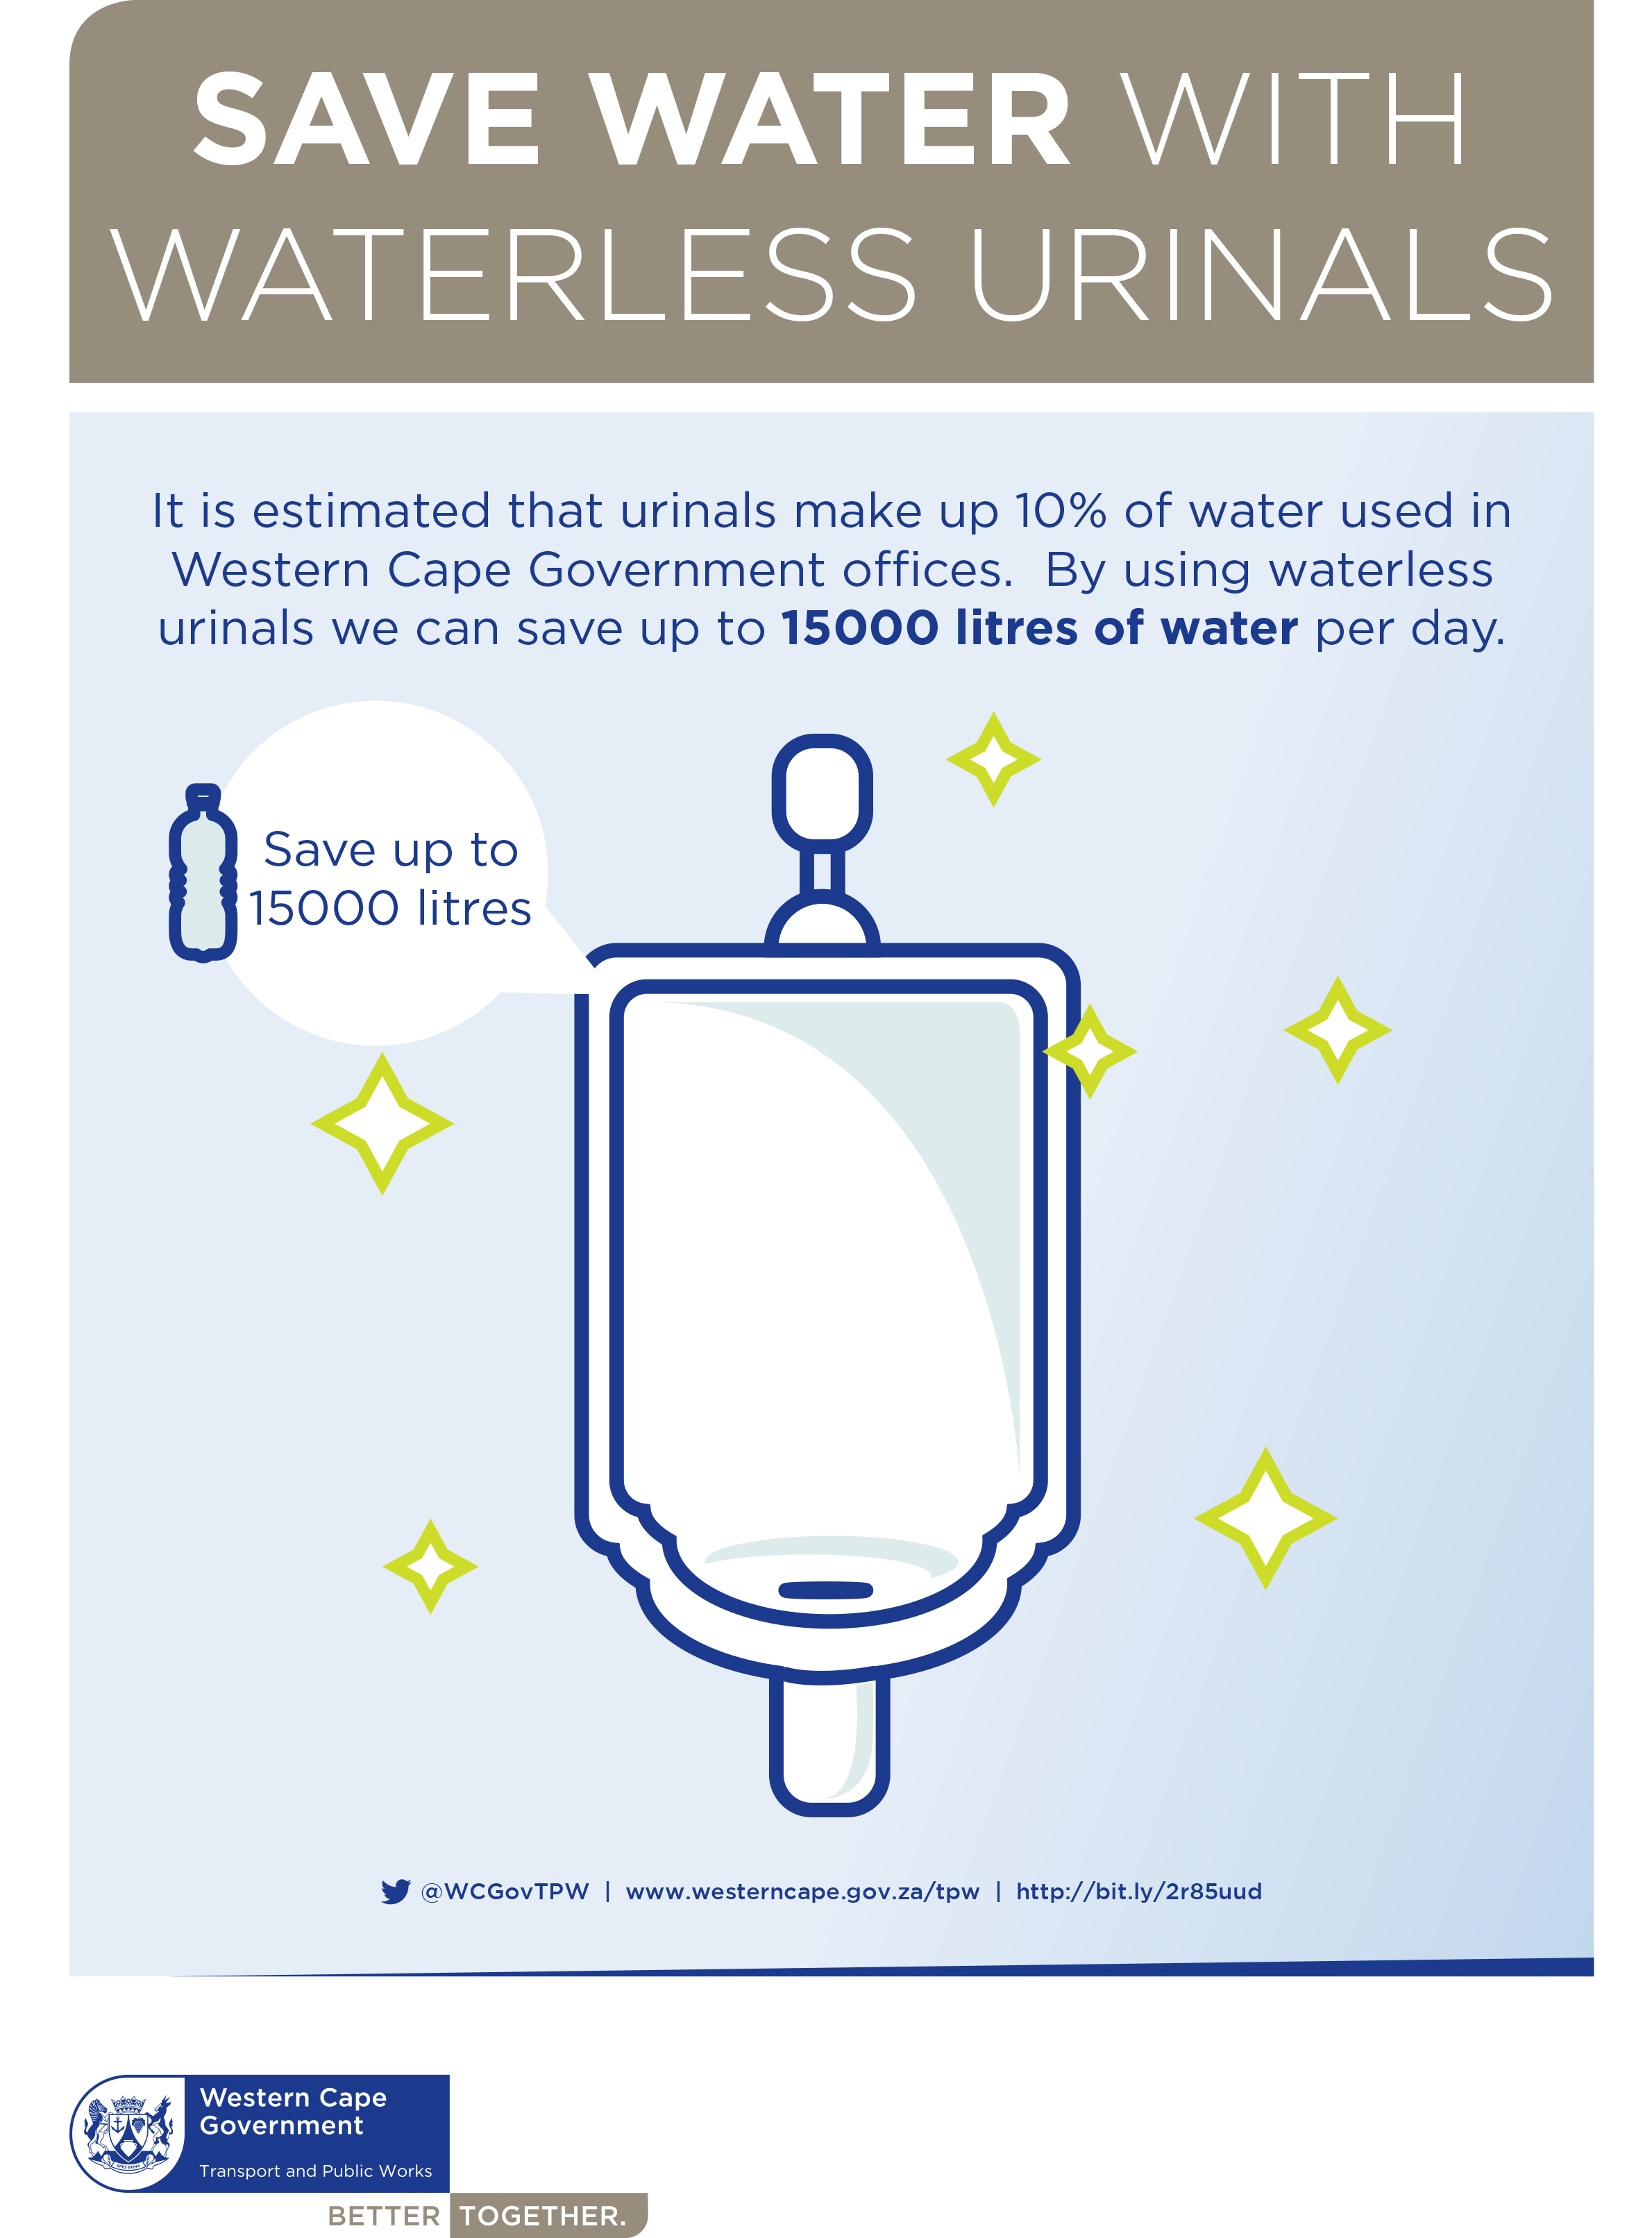 Water less urinals